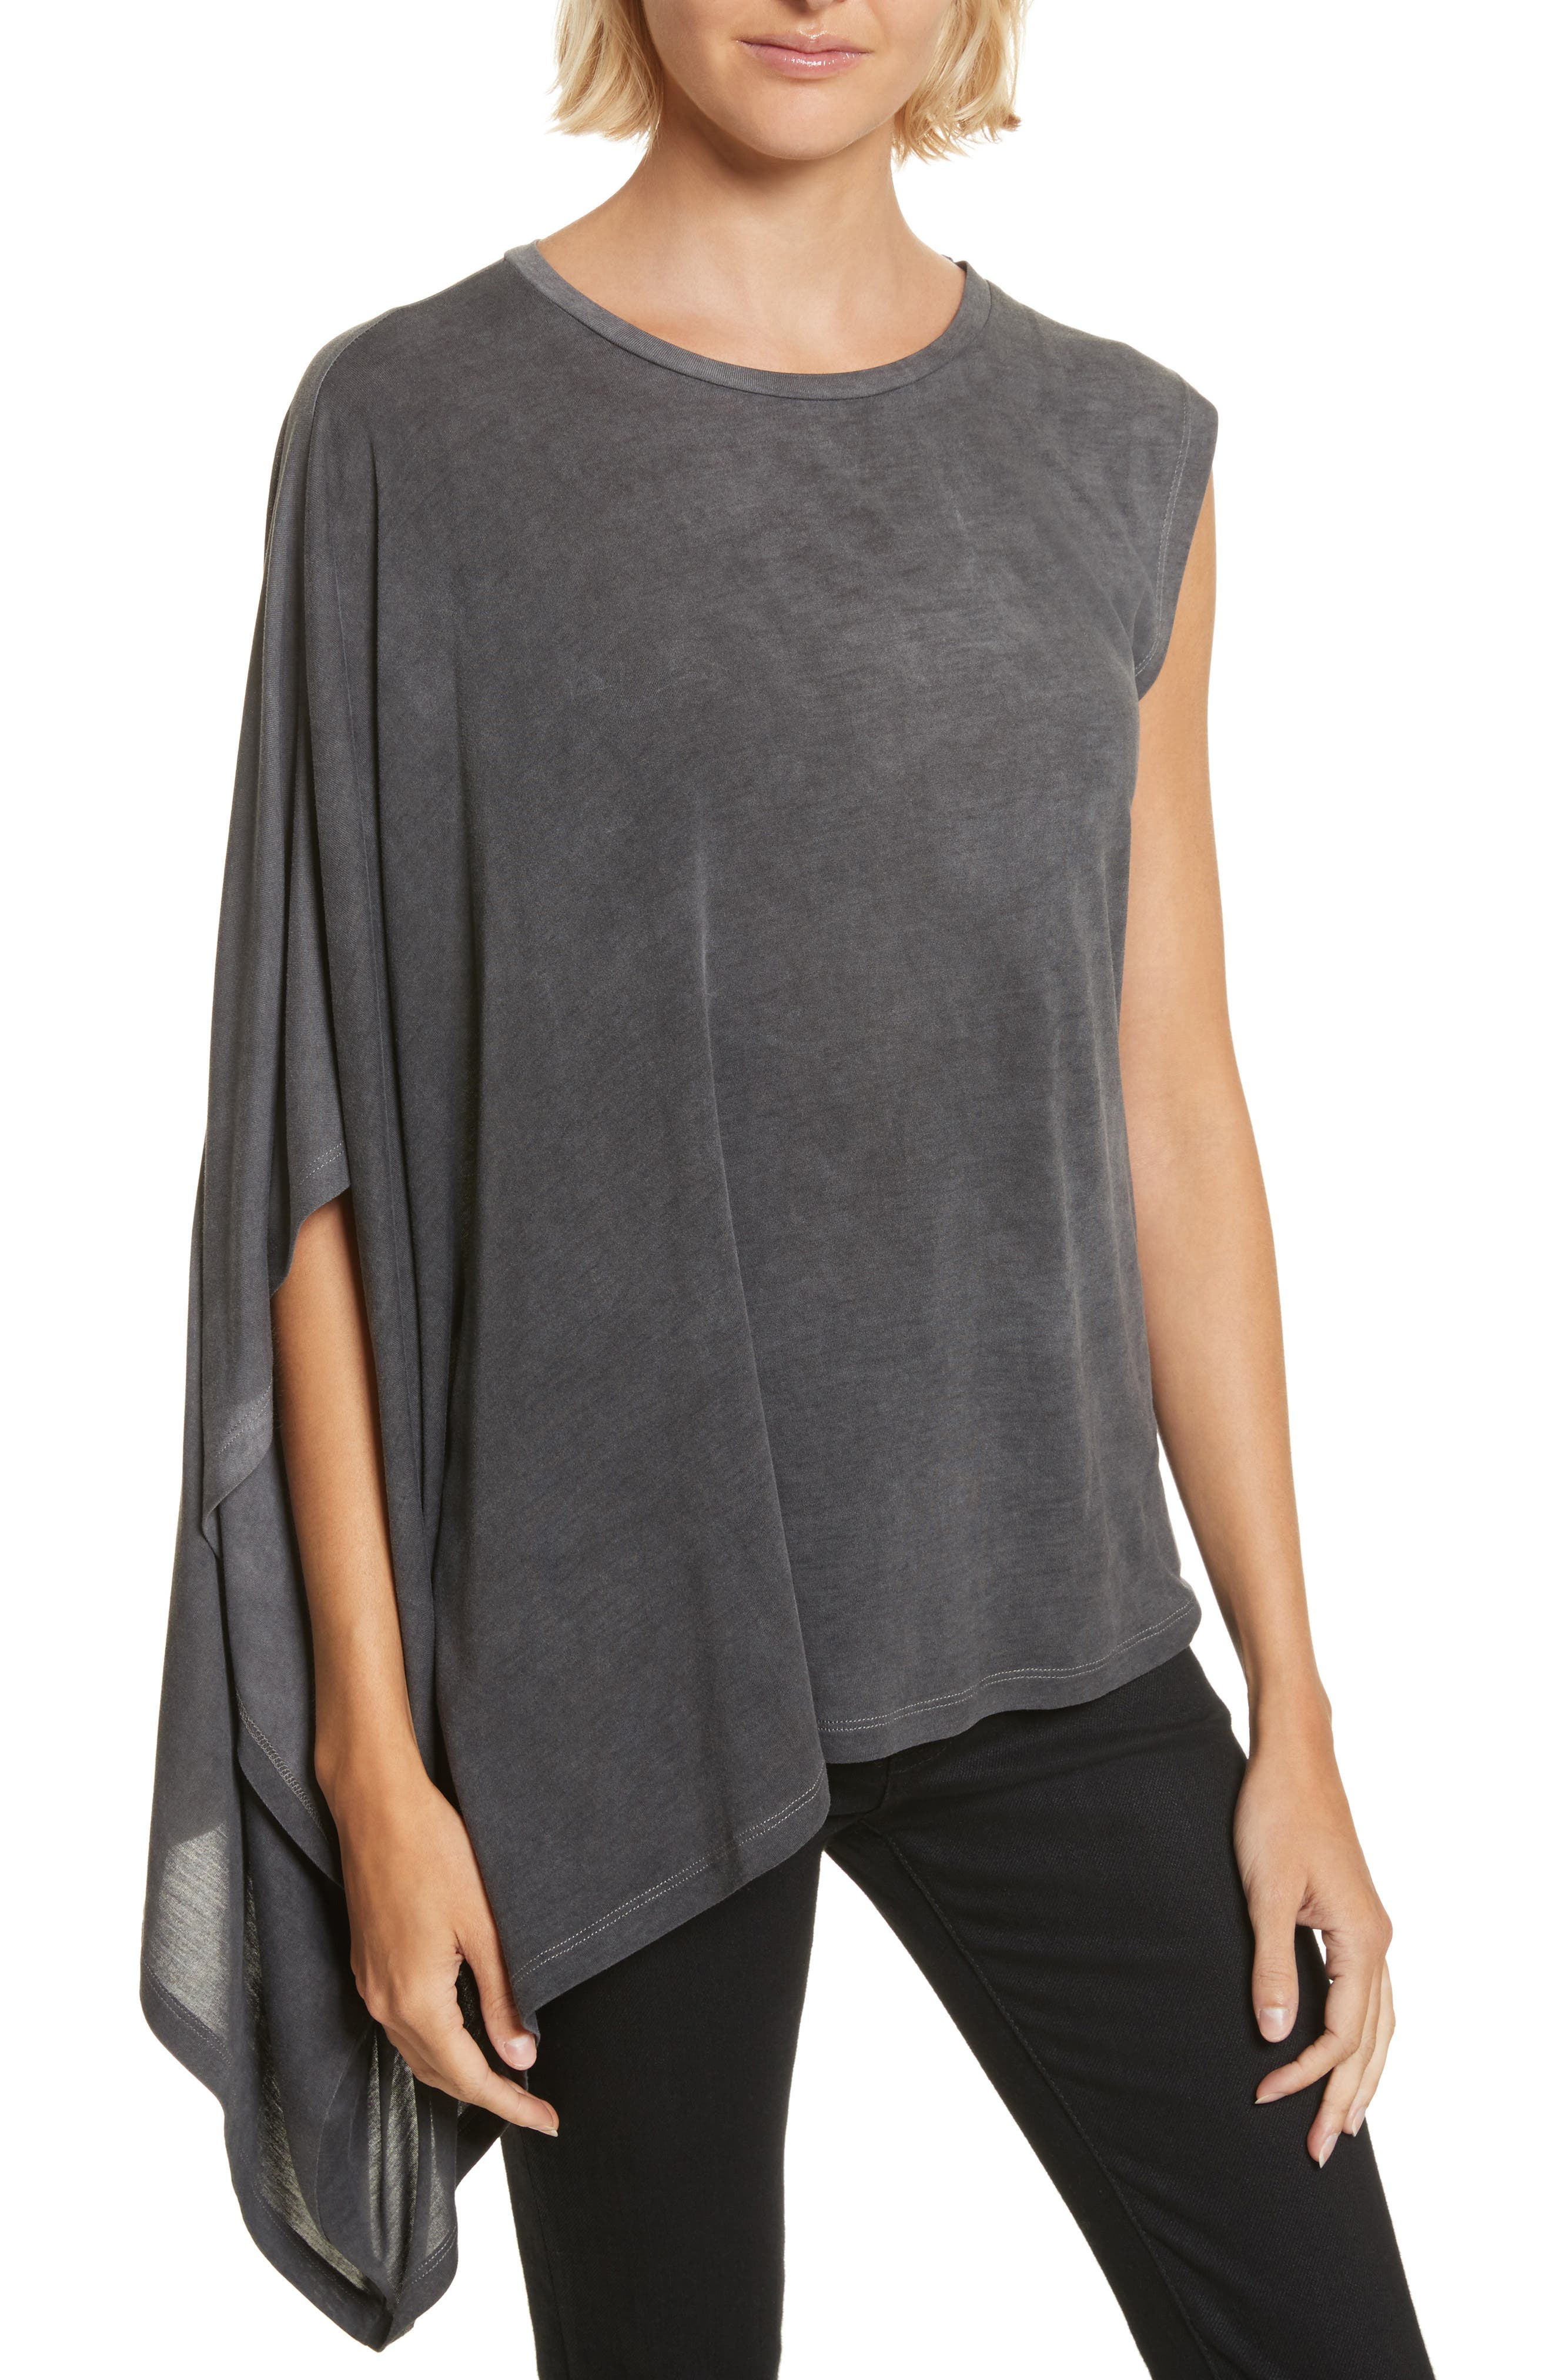 Eloaz Asymmetrical Draped Top,                         Main,                         color, Charcoal